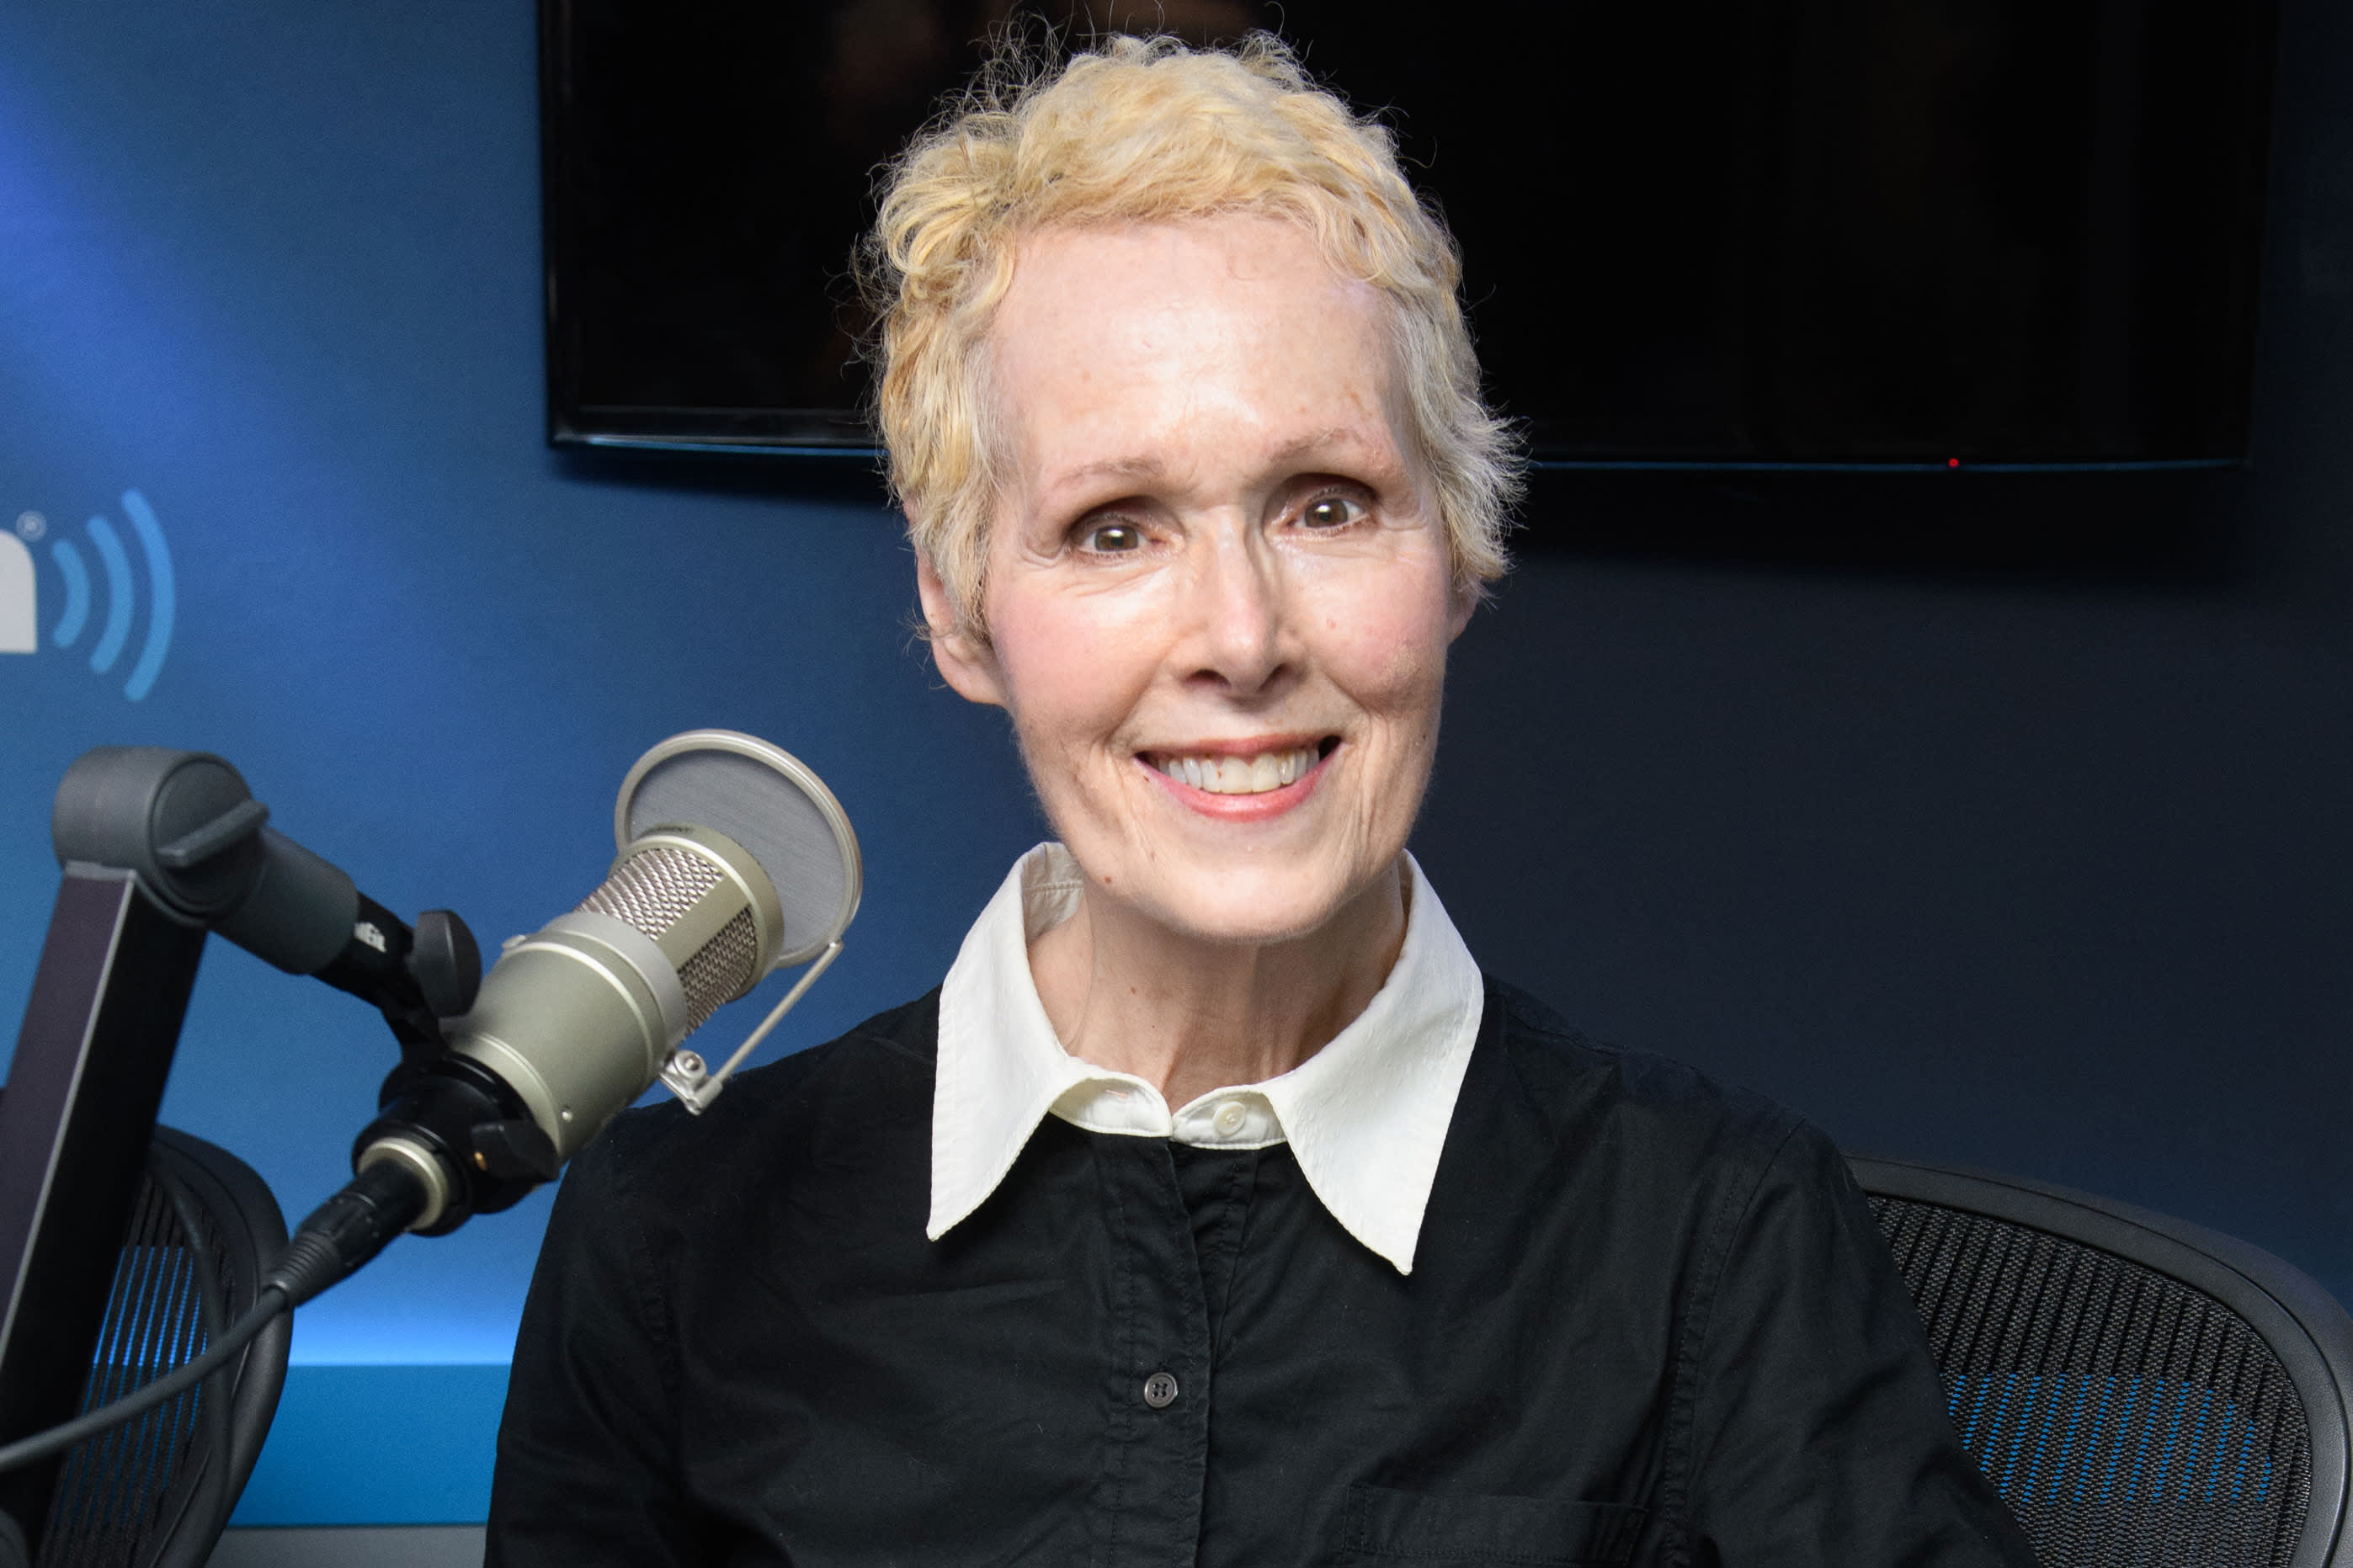 Trump loses bid to dismiss defamation suit by E. Jean Carroll, writer who accused him of rape